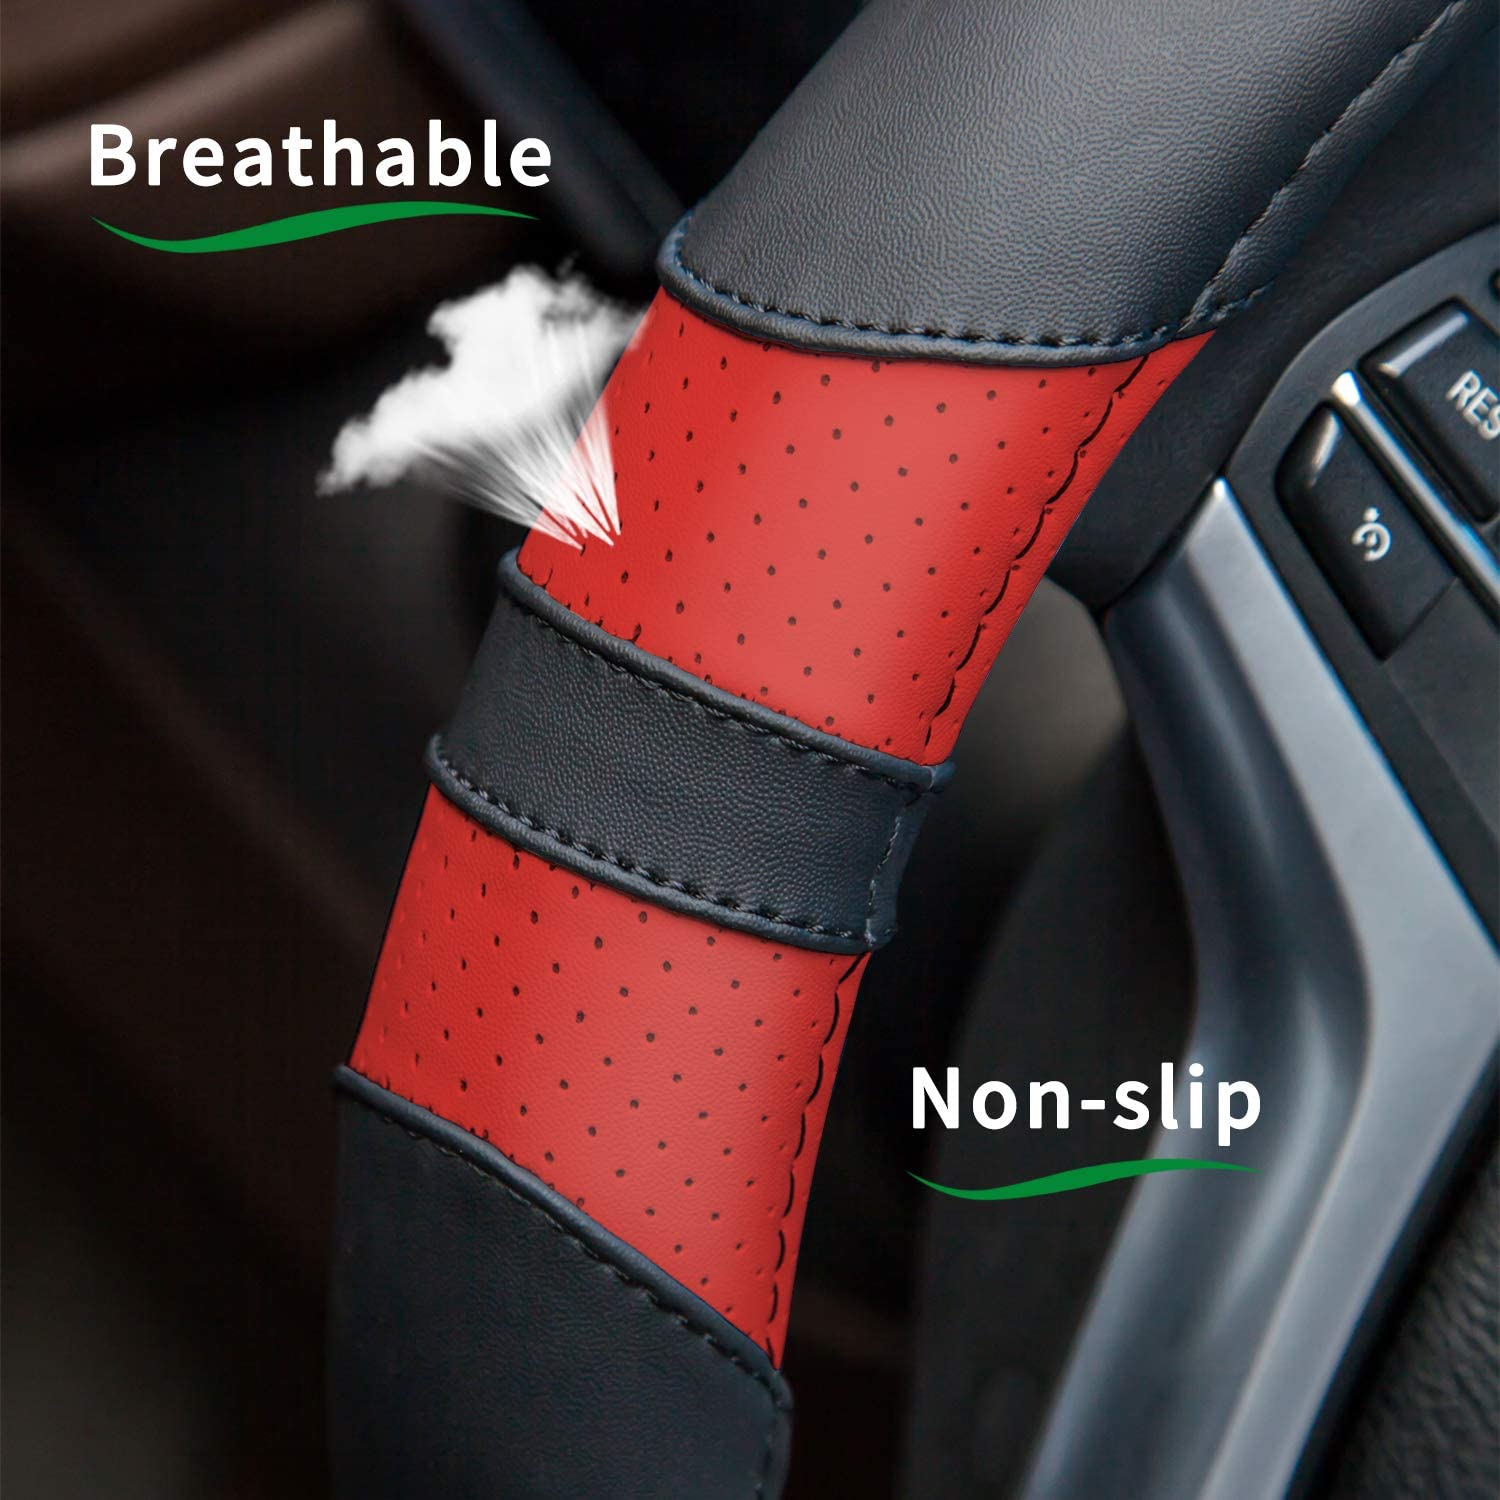 No Smell Suitable for Every Season Achiou Universal Car Steering Wheel Cover 15 inch with Grip Contours Leather Auto for Men and Women Non-Slip